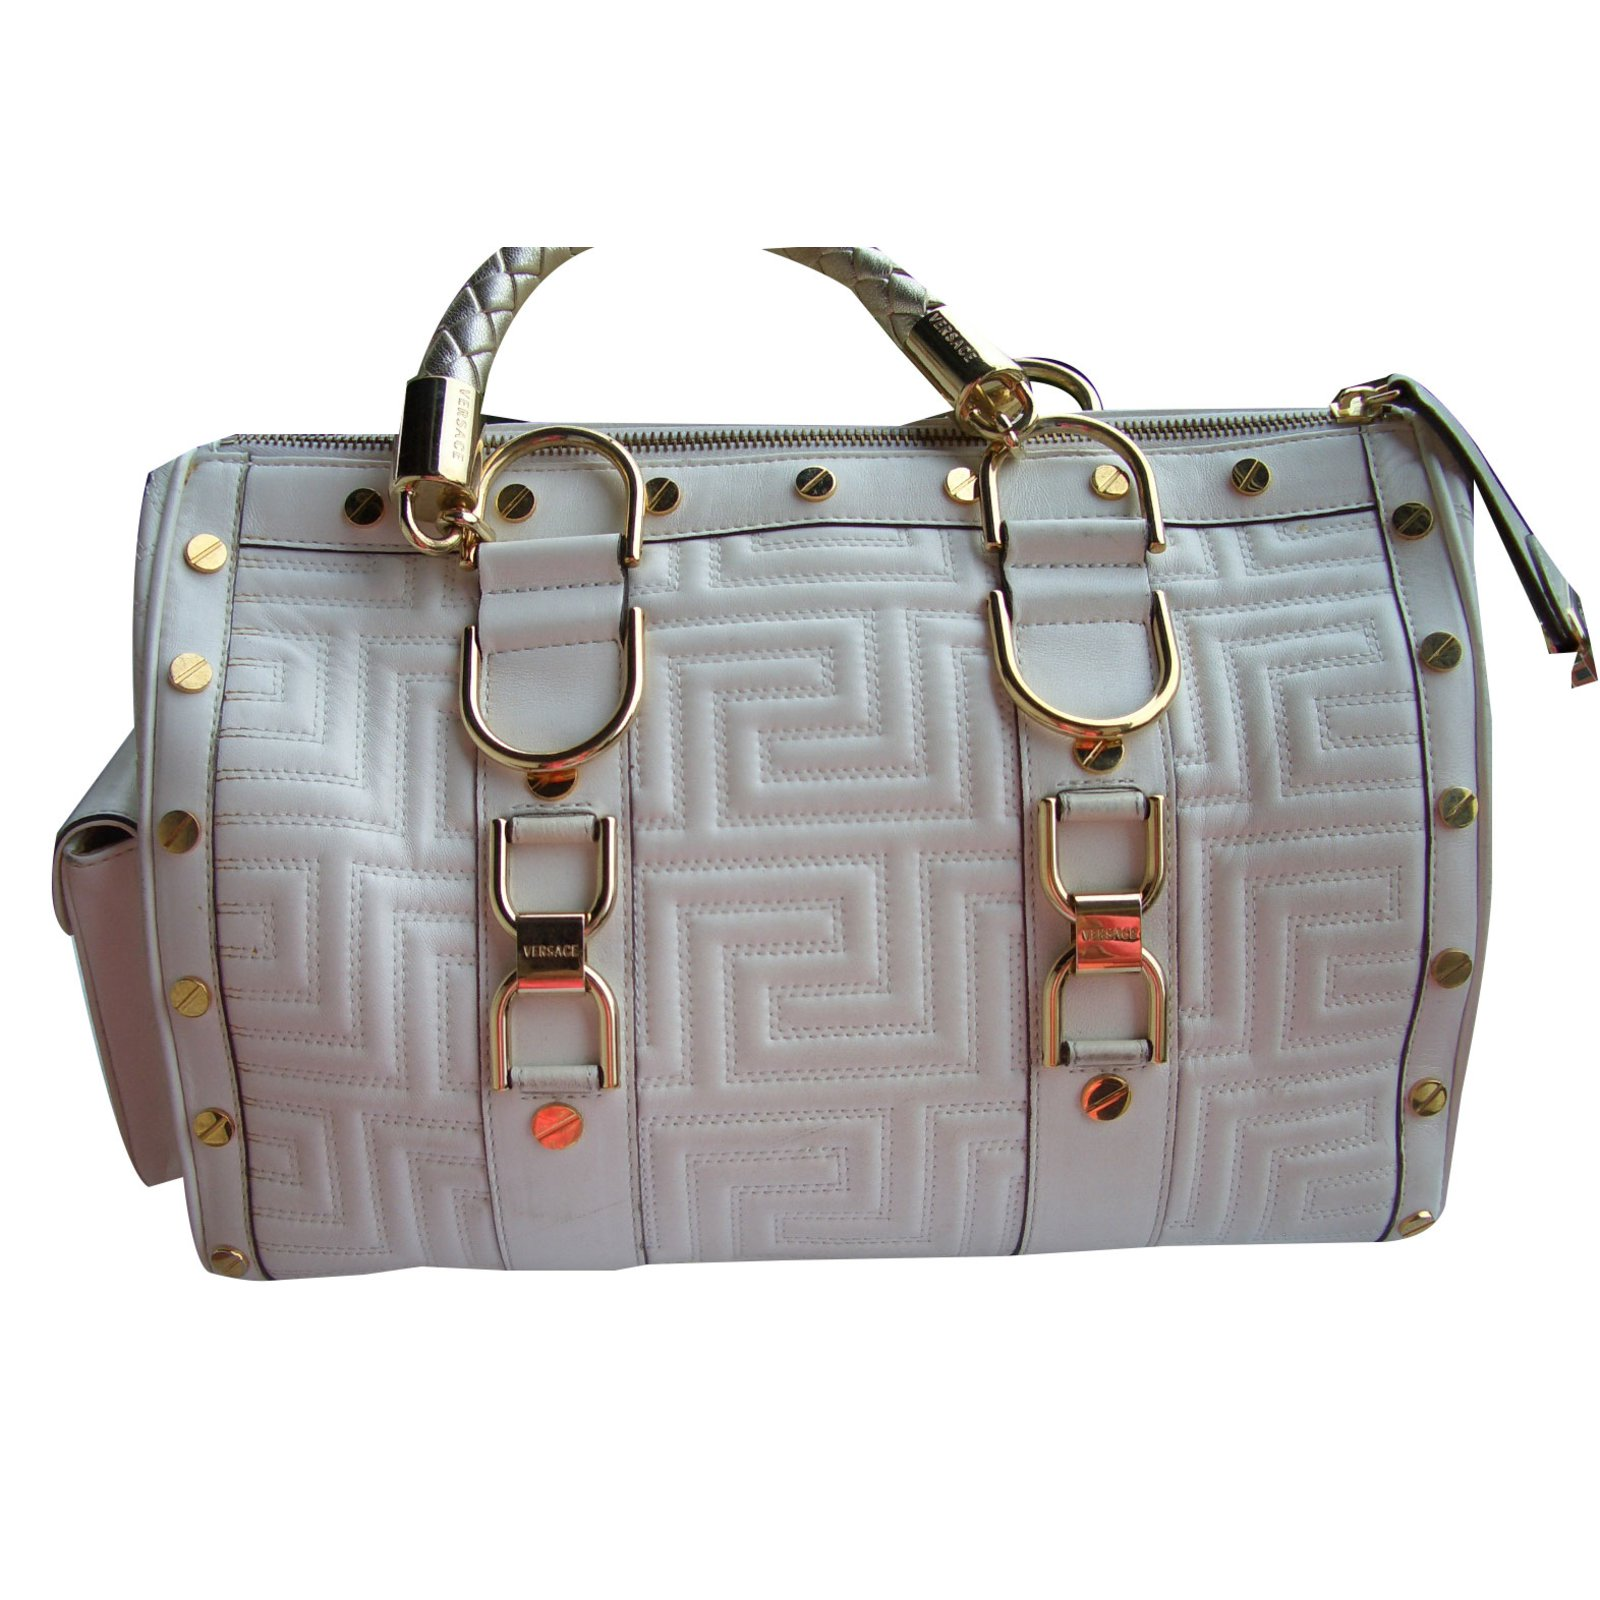 Gianni Versace Handbag Handbags Leather Cream ref.32645 - Joli Closet ccc82c063dc03